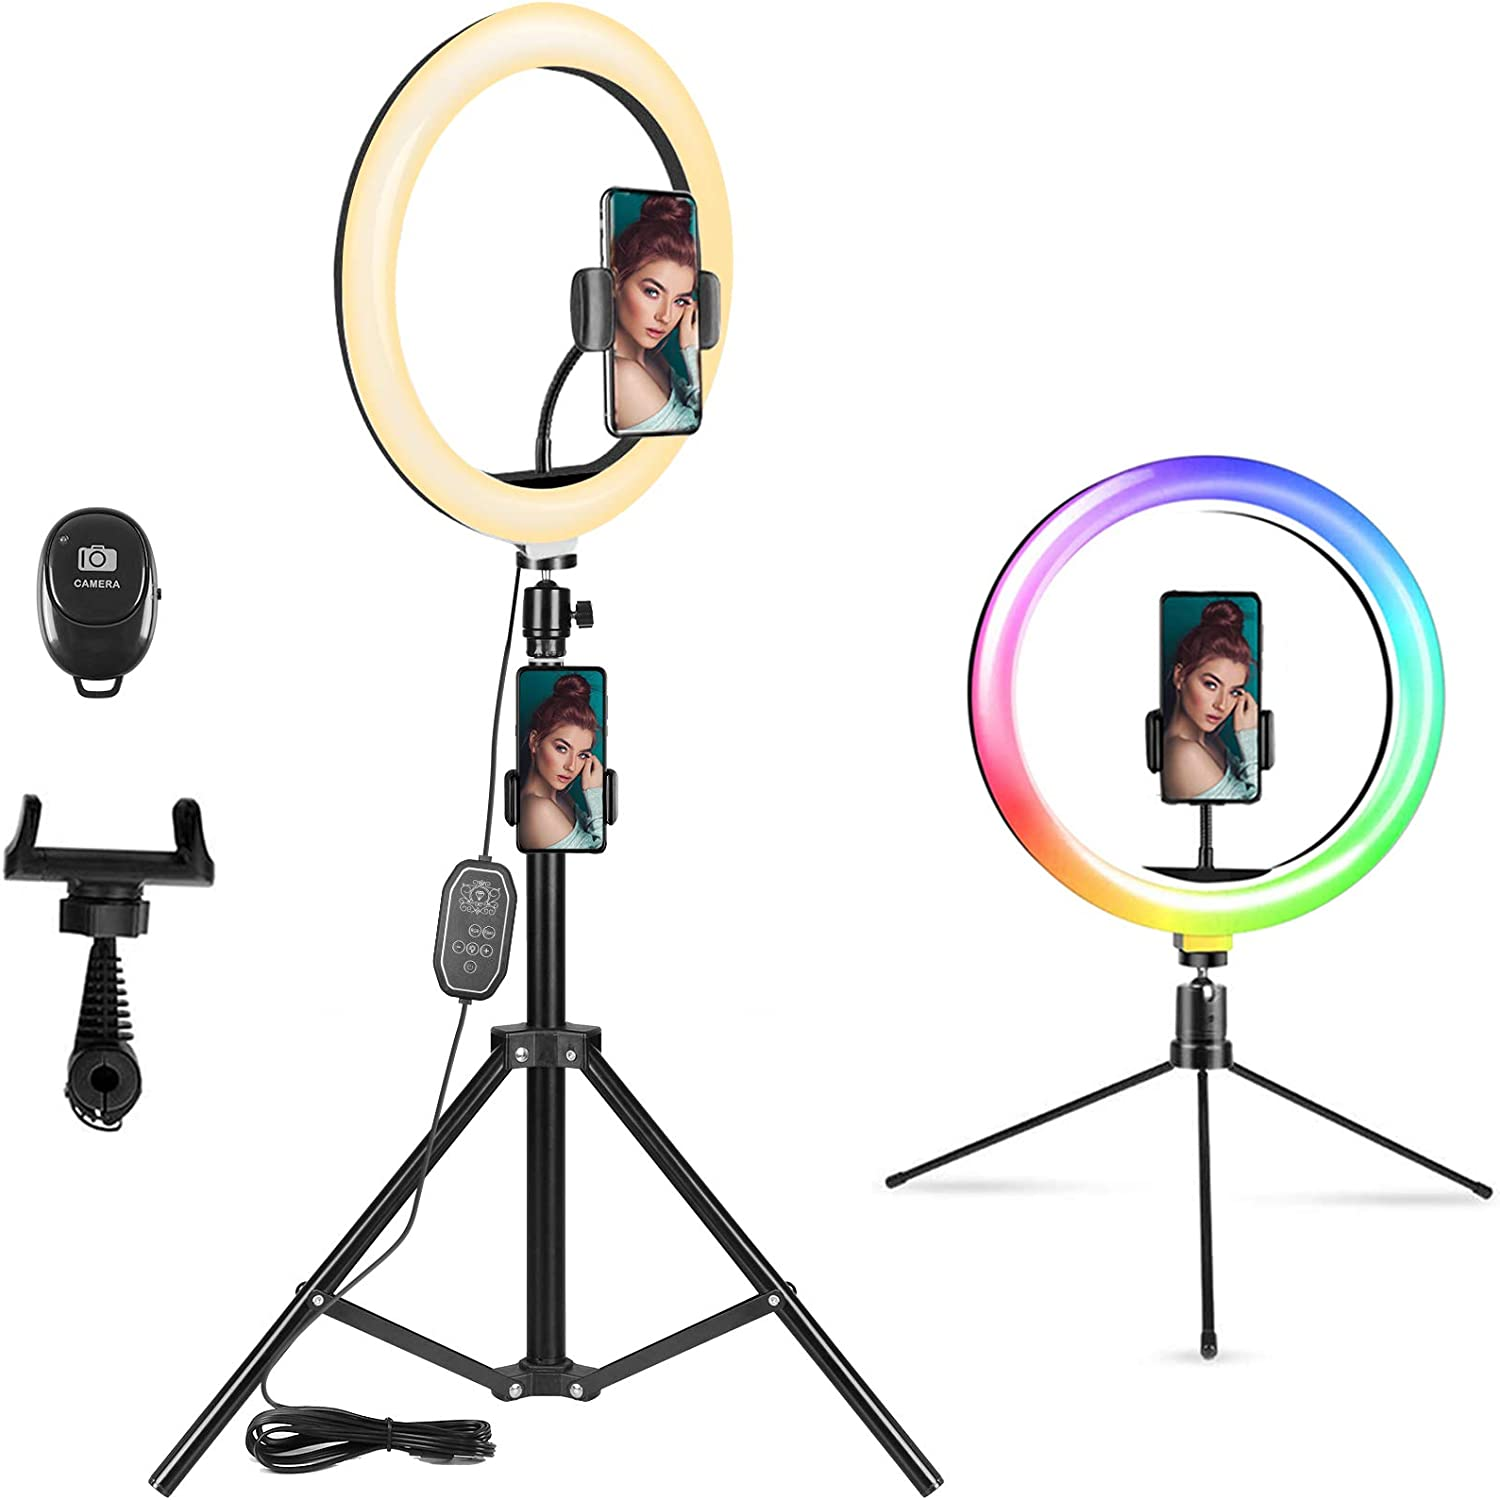 "10.2"" RGB Selfie Ring Light, LED Ring Light with Tripod Stand & Phone Holder"